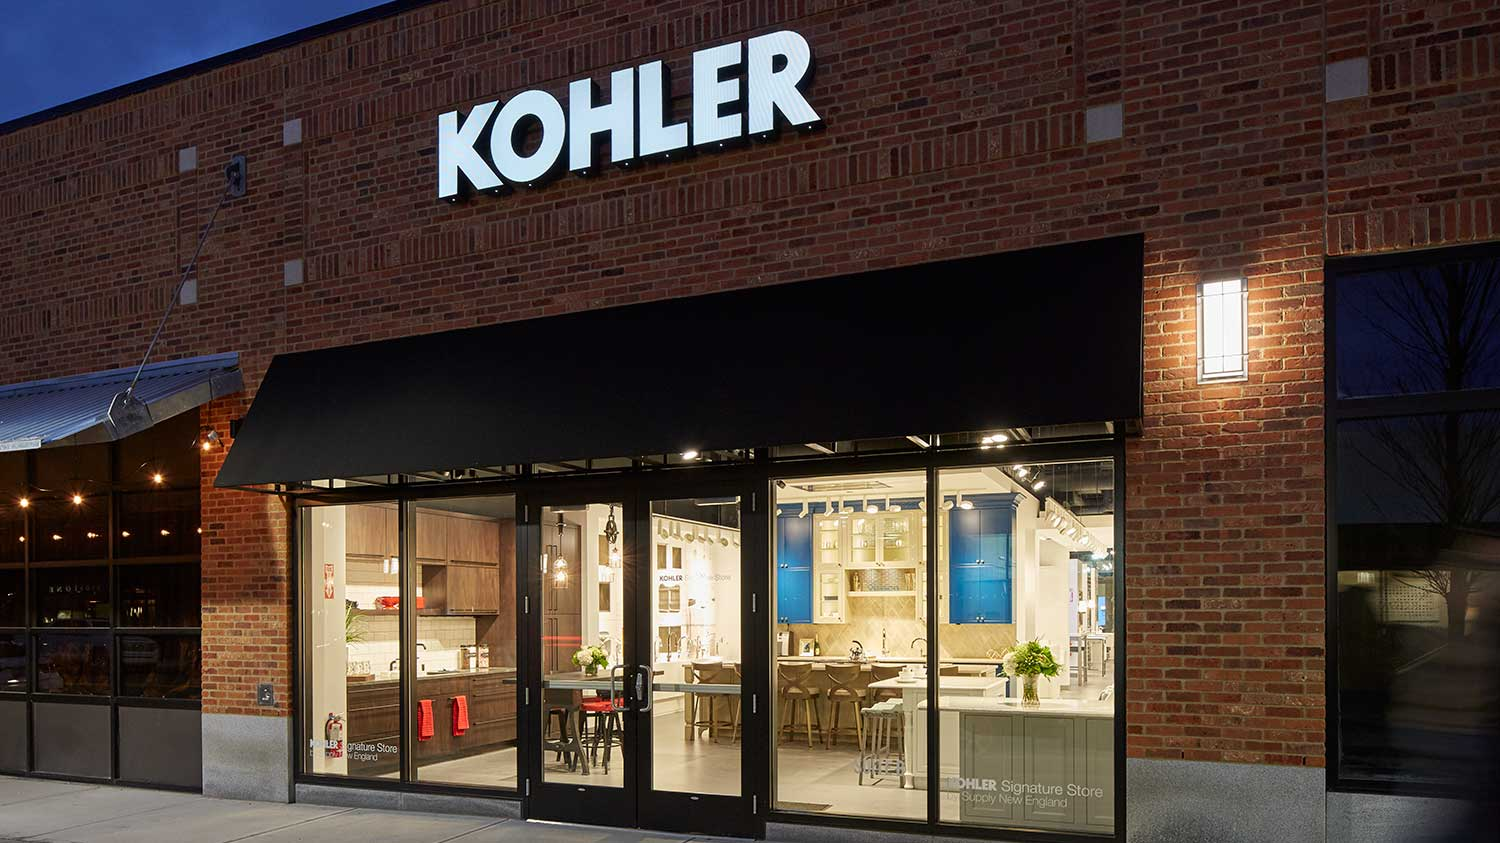 Kohler Signature Store Burlington